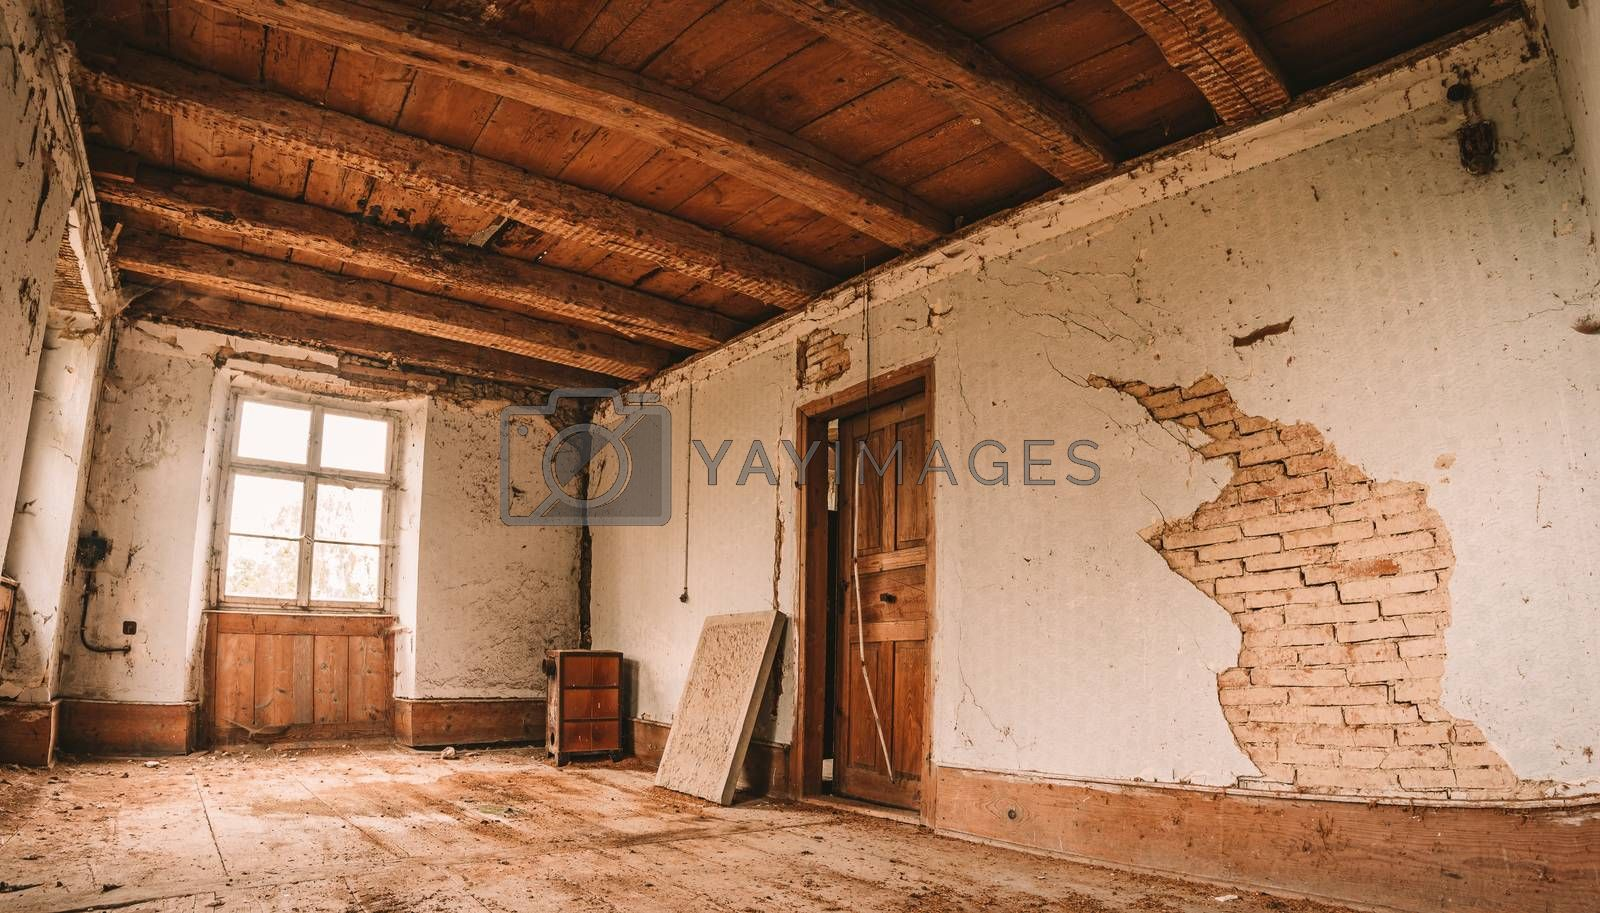 An old abandoned manor house with antique furniture and wonderful architecture by mindscapephotos